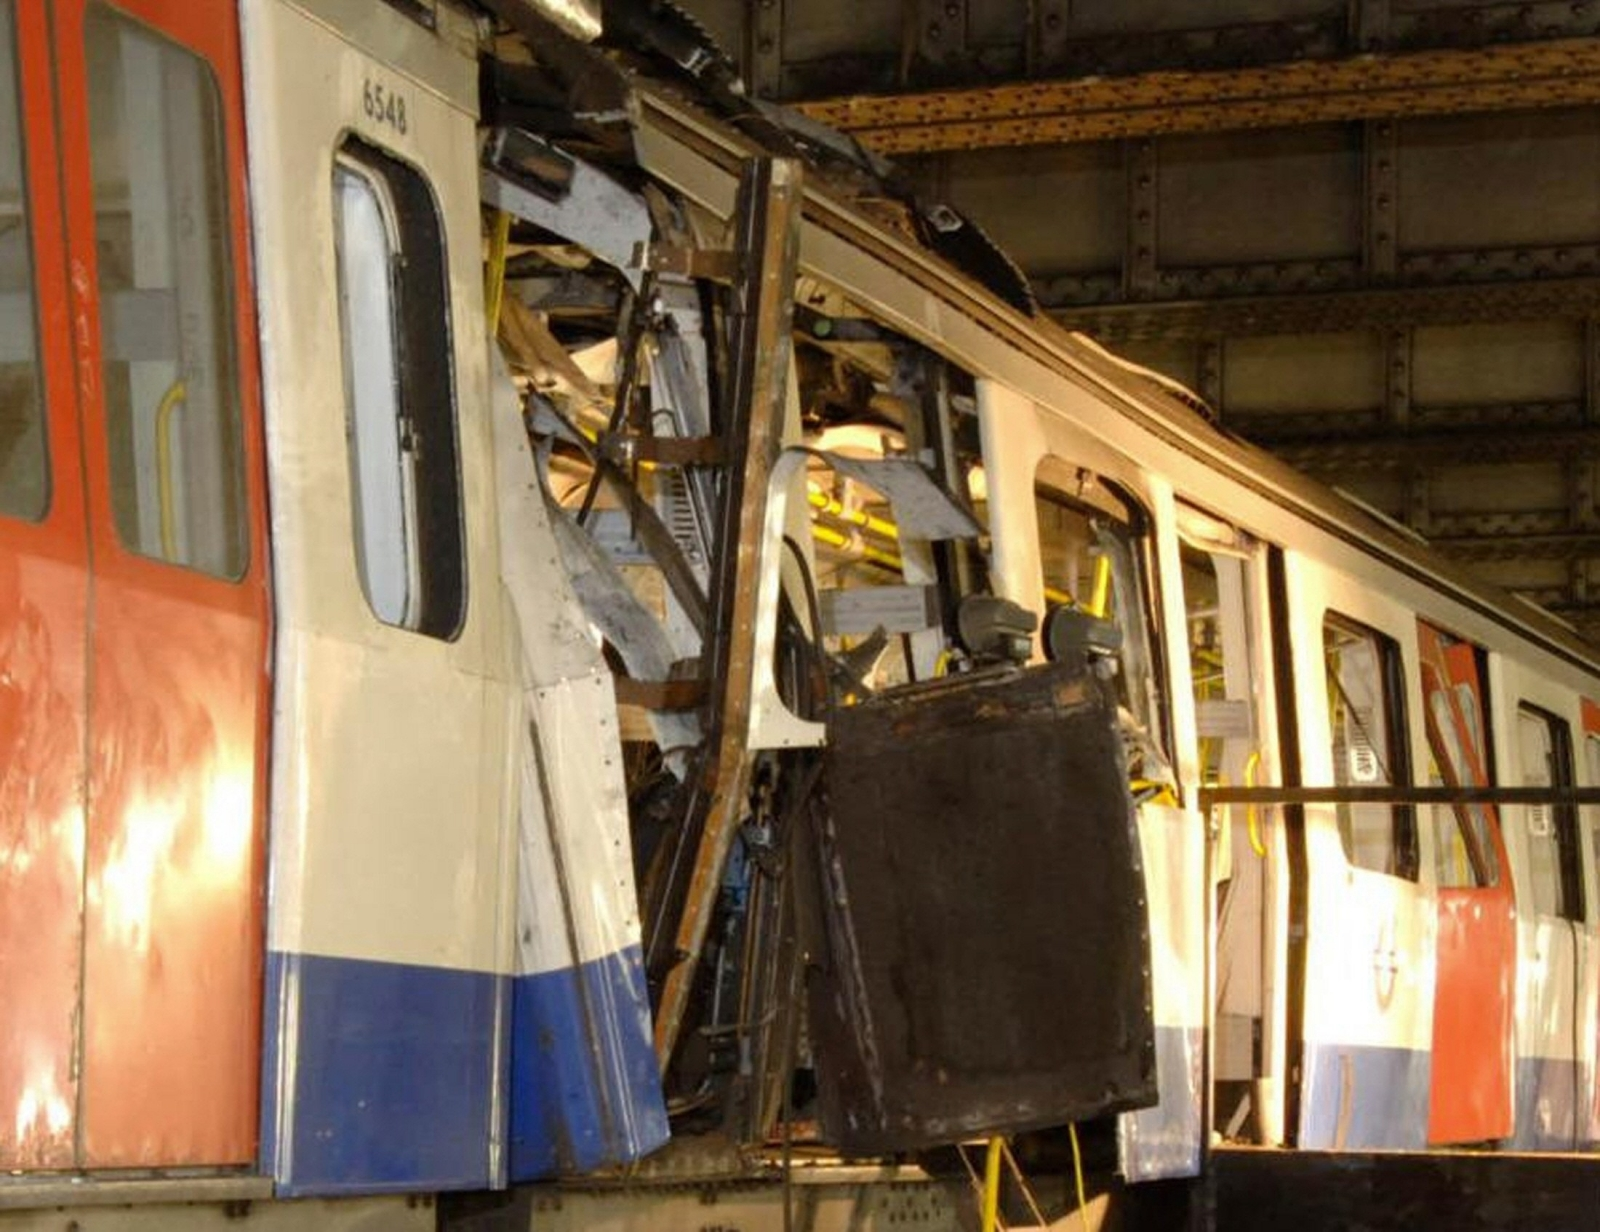 7/7 bombings aldgate train